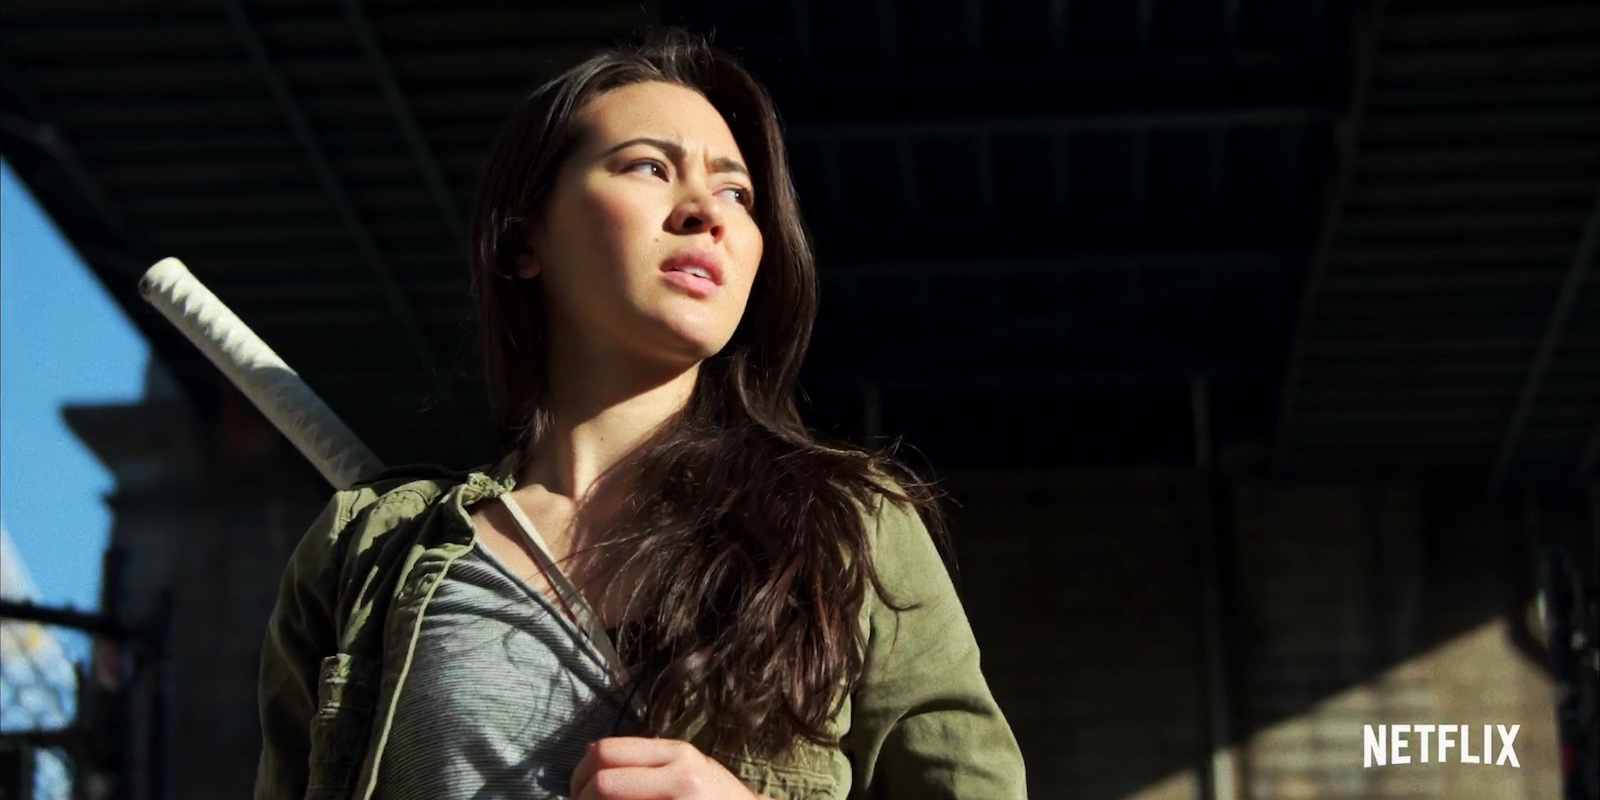 Colleen Wing dans la série Iron Fist